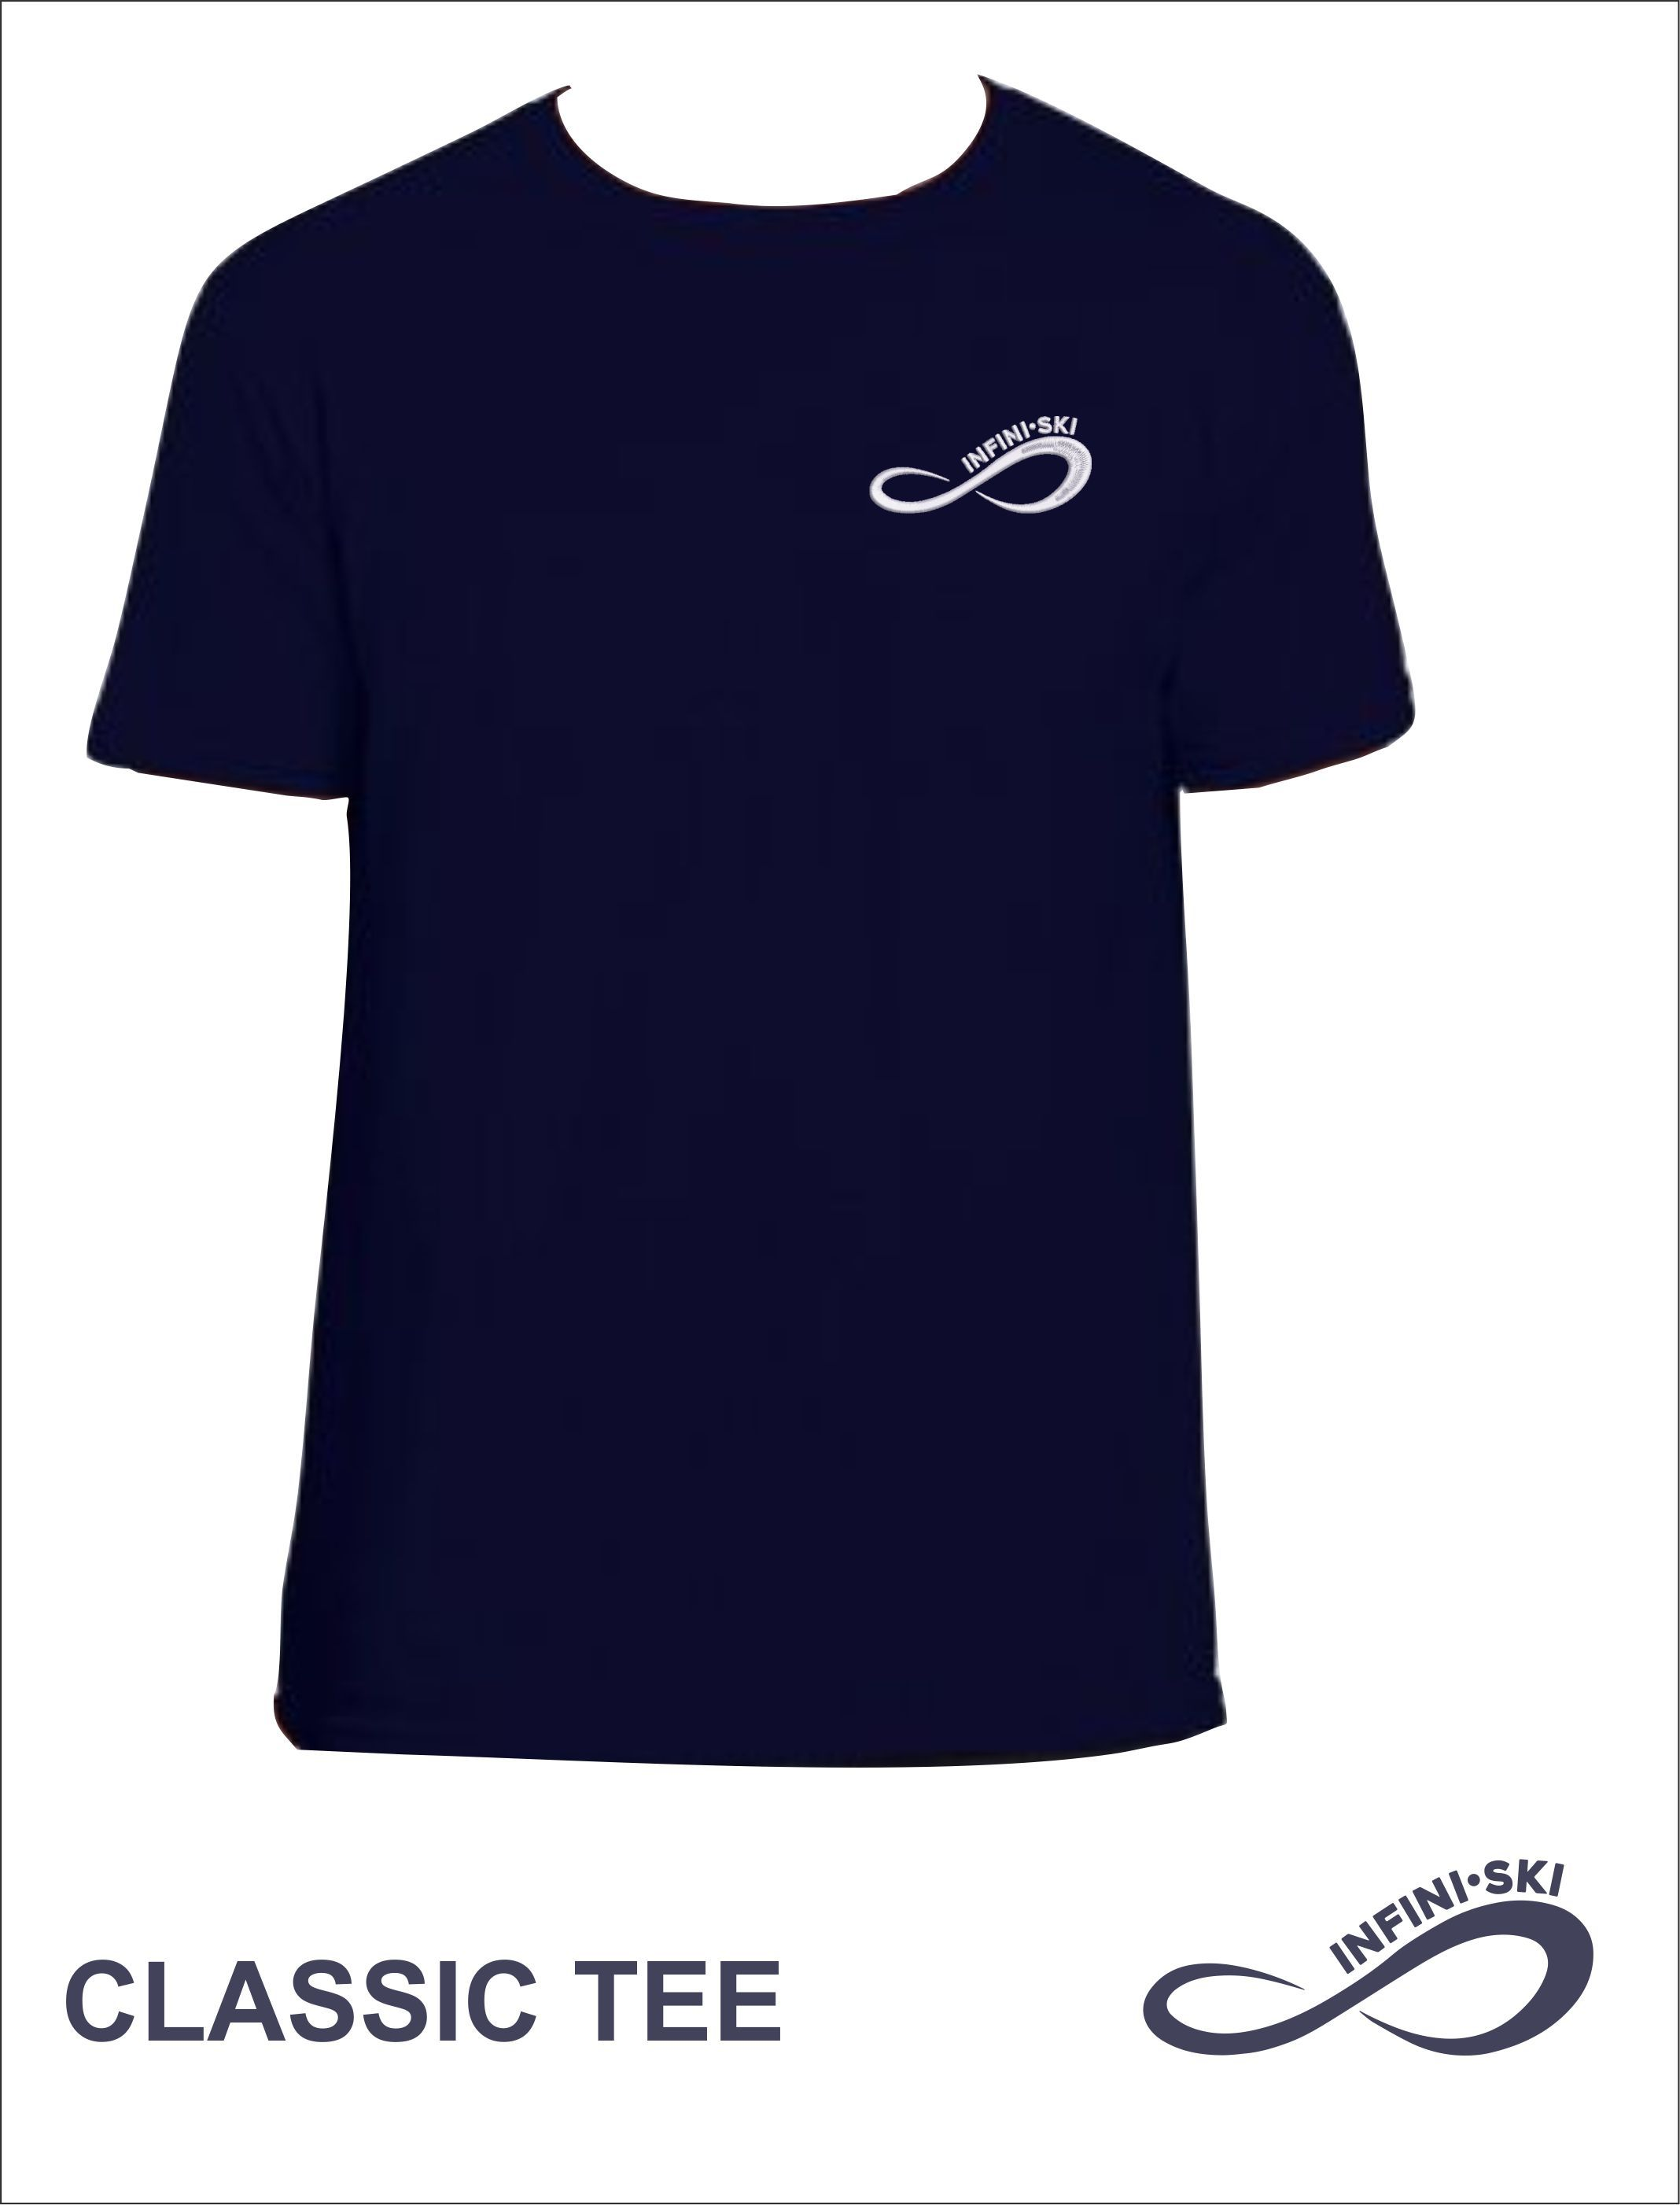 Classic Tee Front